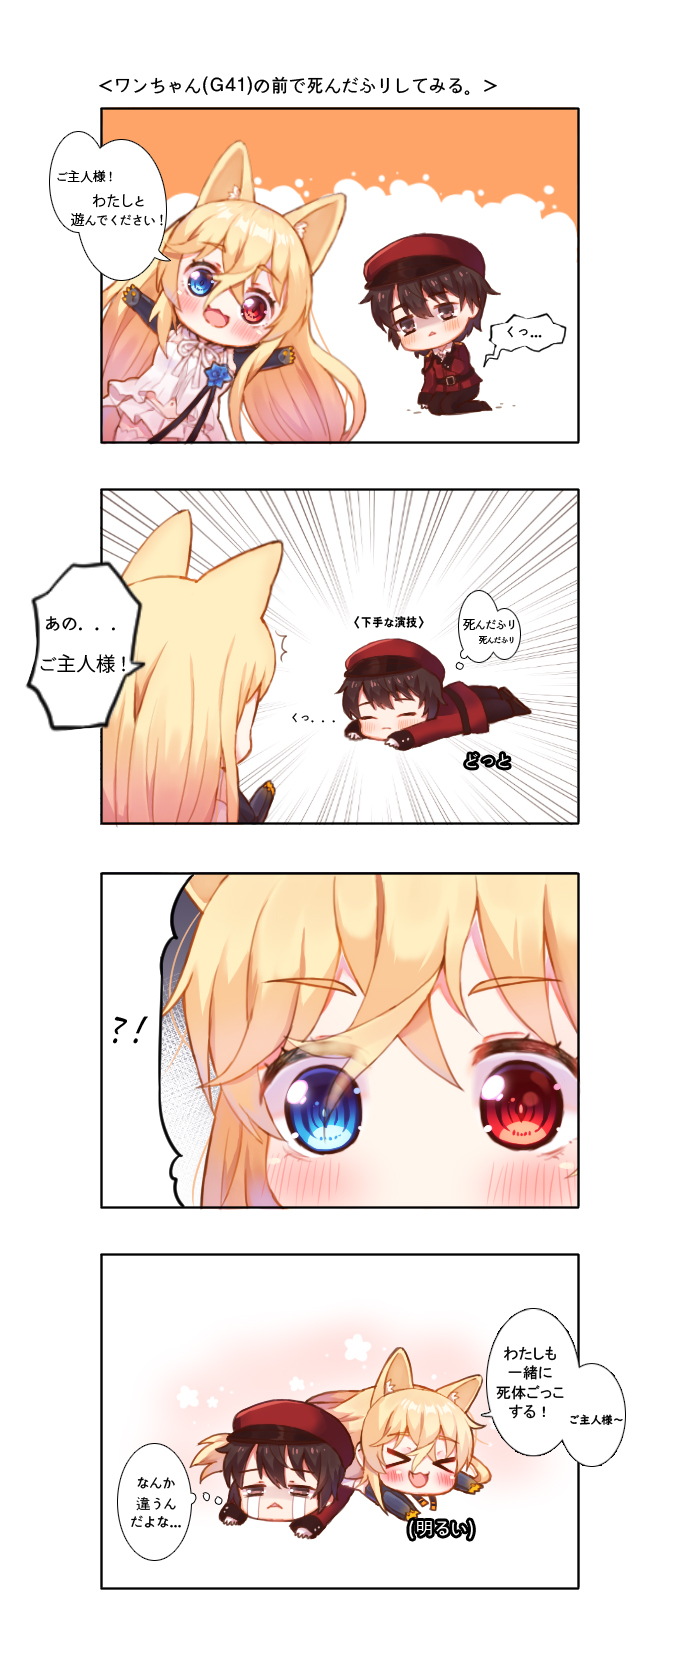 !? >_< 1boy 1girl 4koma :3 :d animal_ears bangs beret black_gloves blonde_hair blue_eyes blush brown_footwear brown_pants cat_ears chibi closed_eyes closed_mouth comic commander_(girls_frontline) crying crying_with_eyes_open emphasis_lines eyebrows_visible_through_hair foreign_blue g41_(girls_frontline) girls_frontline gloves hair_between_eyes hat heterochromia highres jacket long_hair long_sleeves military_hat military_jacket on_person open_mouth outstretched_arms pants parted_lips red_eyes red_hat red_jacket shoes smile spoken_interrobang spread_arms streaming_tears tears translation_request very_long_hair xd